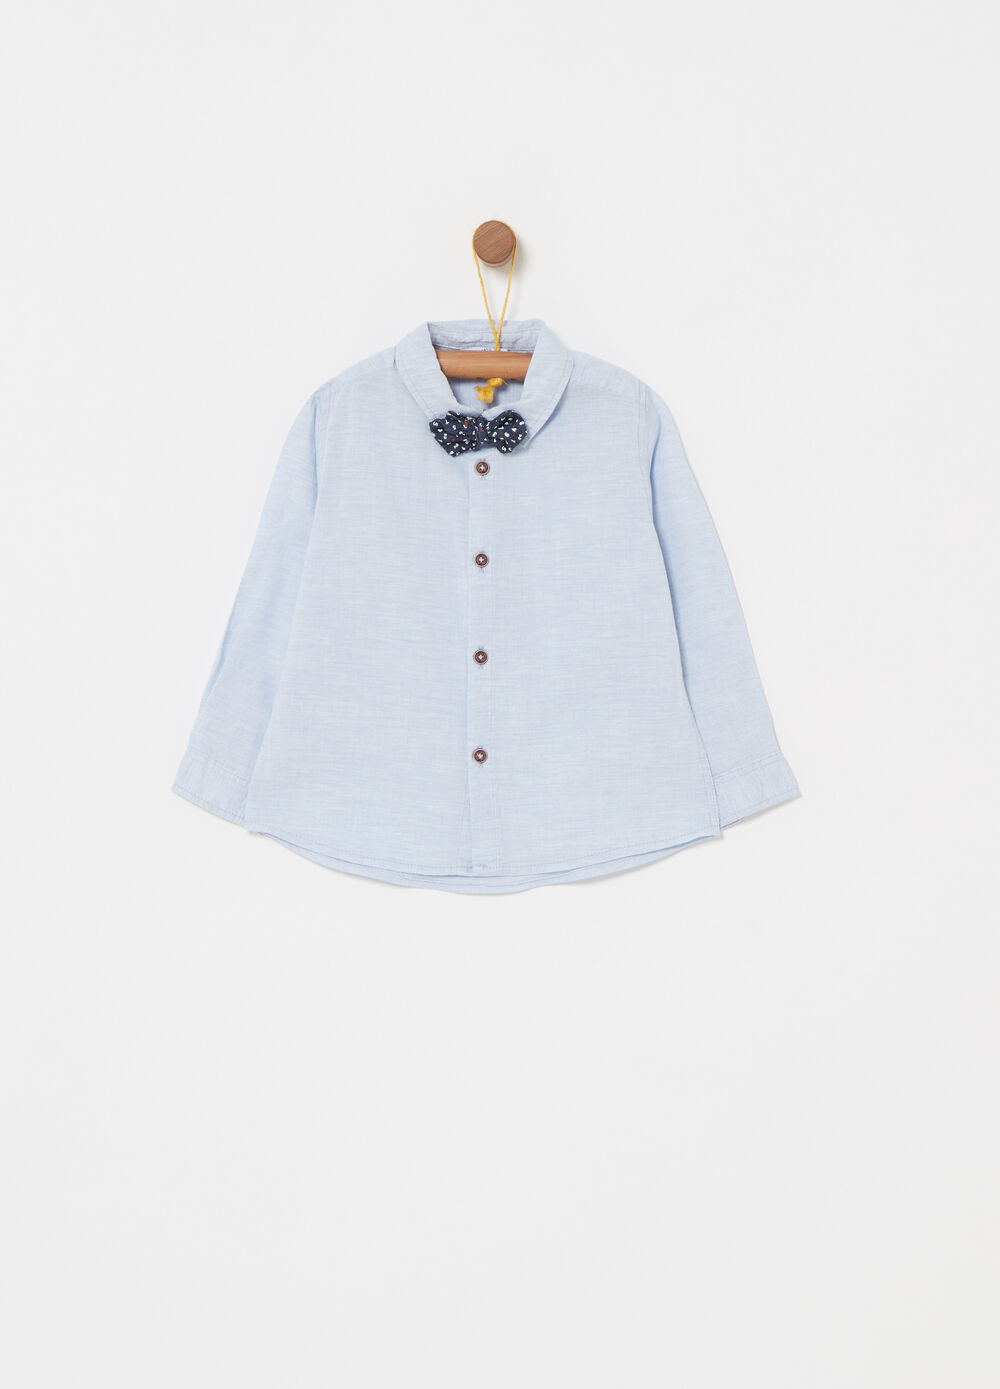 100% cotton shirt with bow